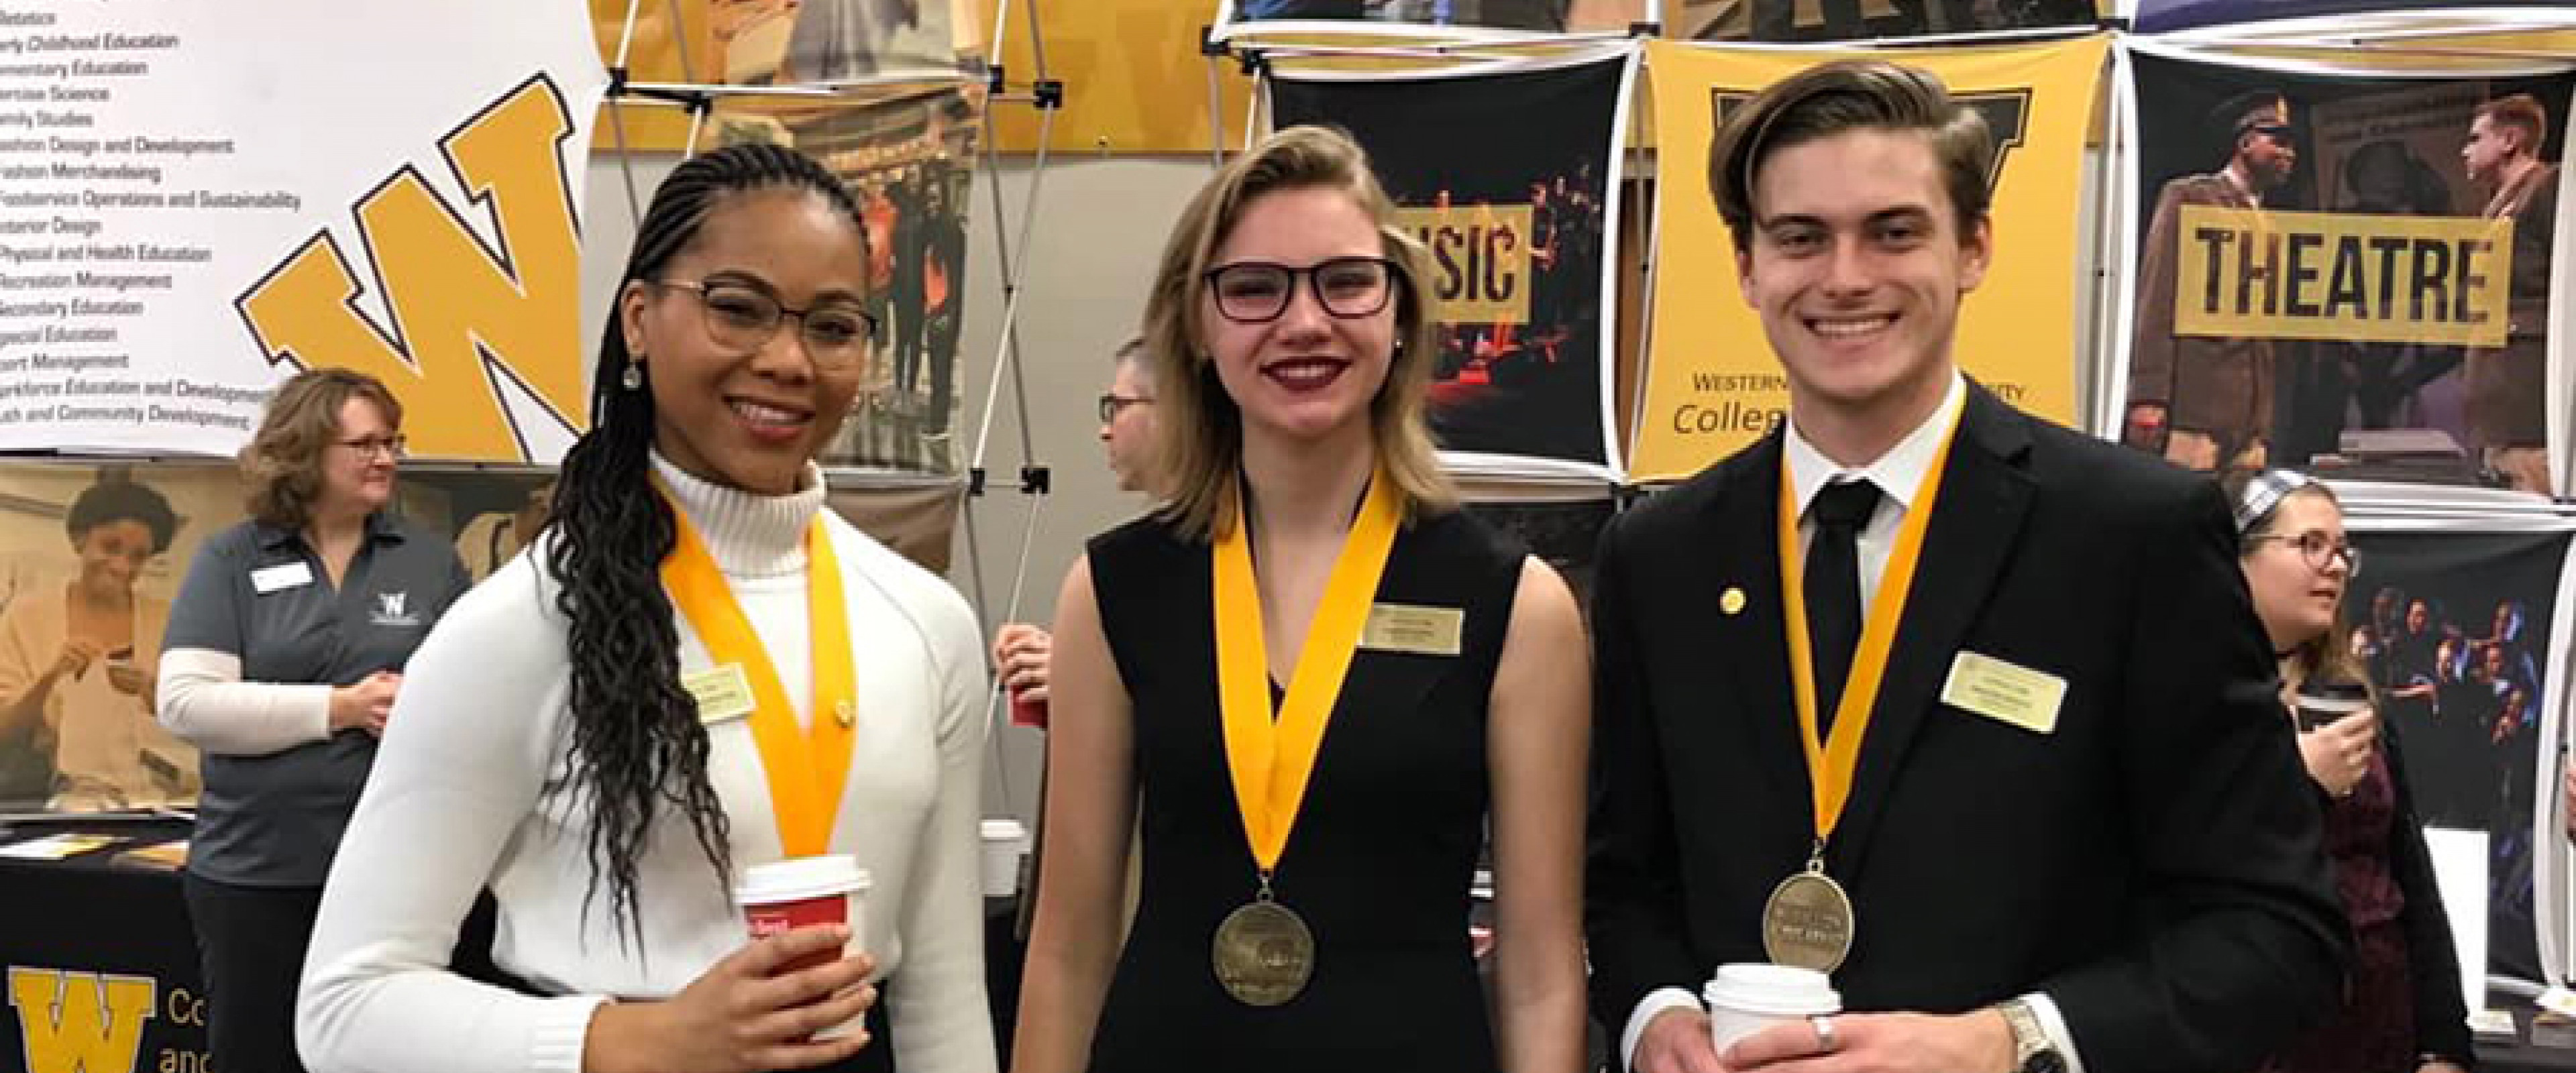 Medallions at the 2018 competition.